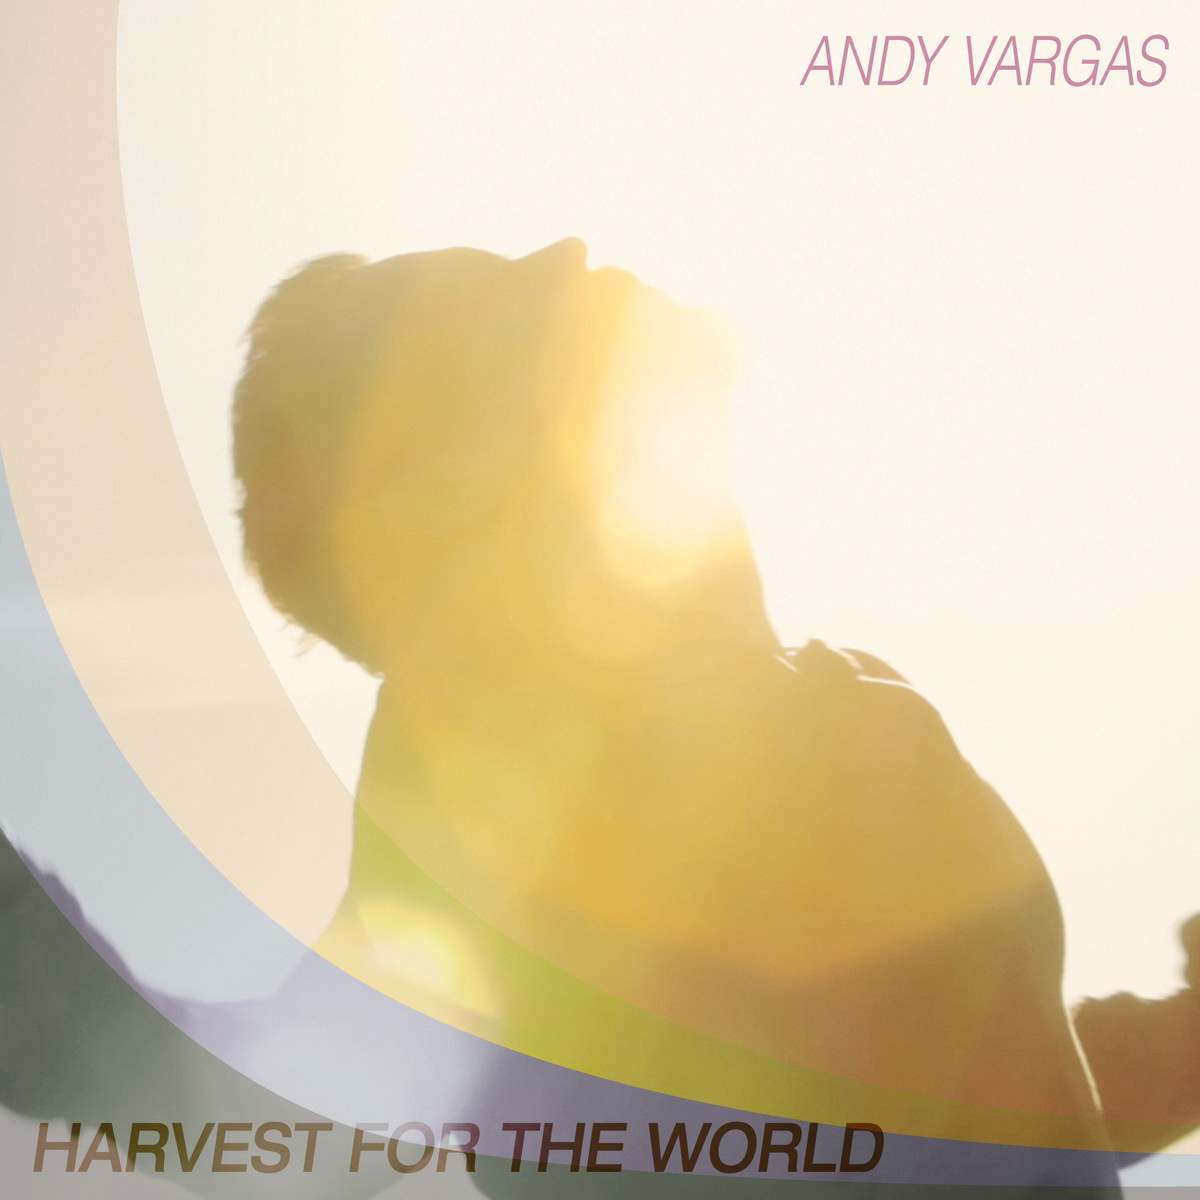 Andy Vargas-Harvest For The World.jpg